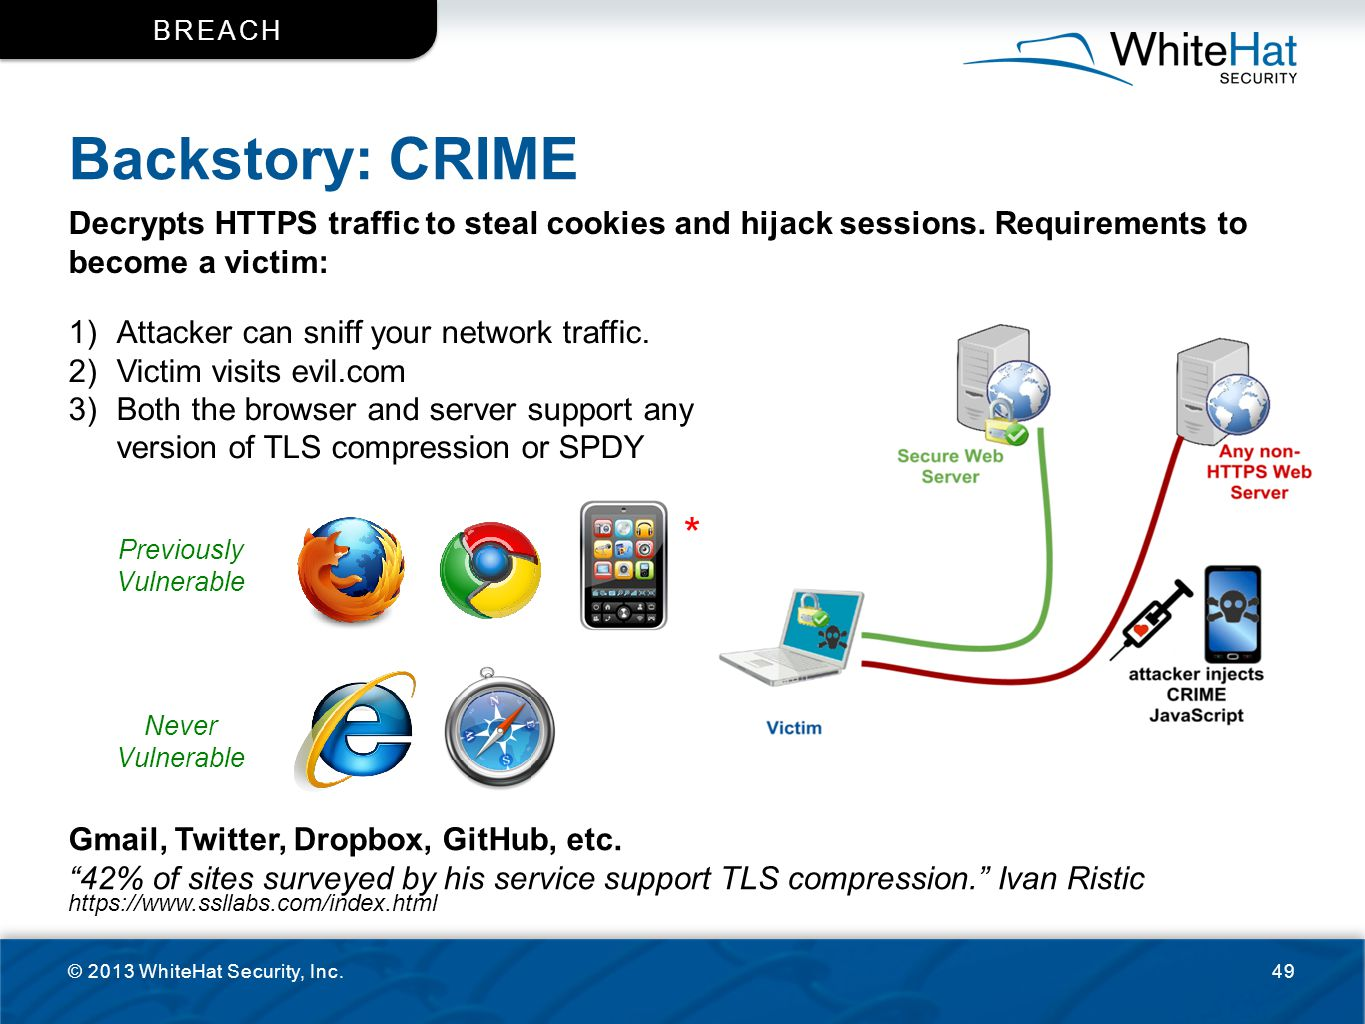 Backstory: CRIME © 2013 WhiteHat Security, Inc.49 BREACH Decrypts HTTPS traffic to steal cookies and hijack sessions. Requirements to become a victim: